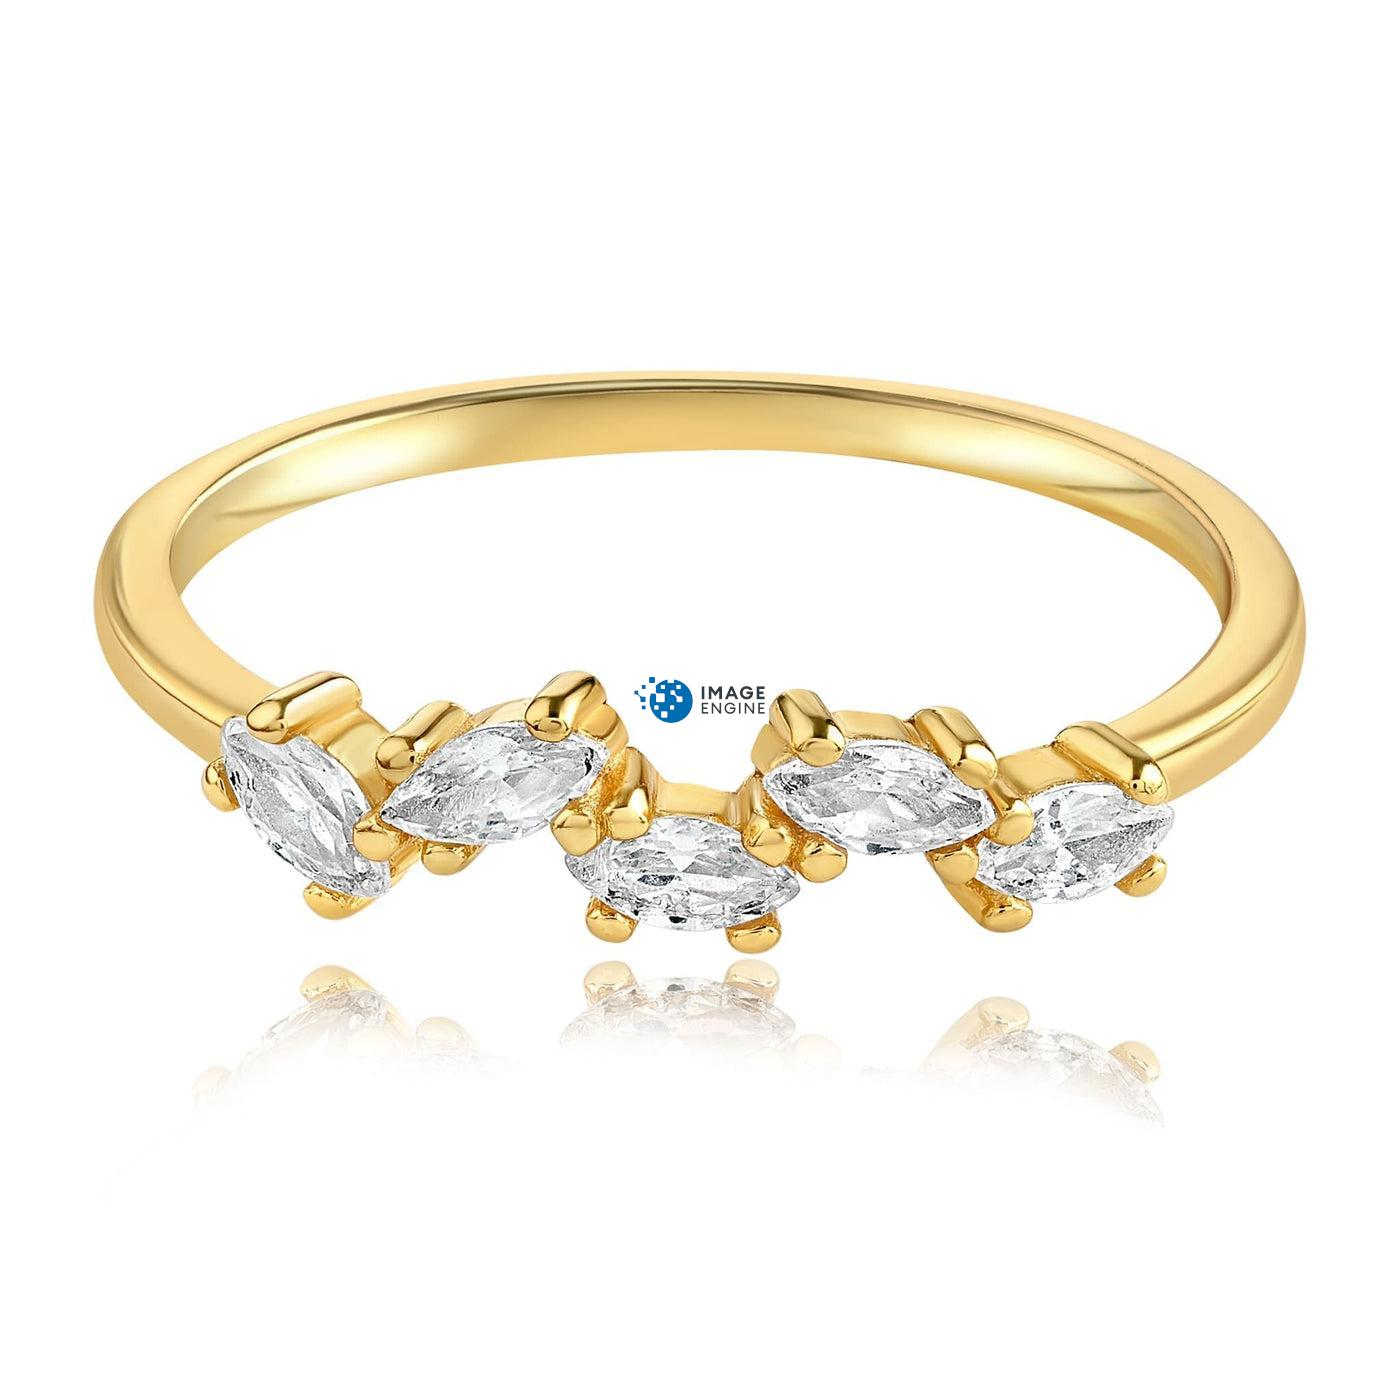 Genna Round Cut Ring - Front View Facing Down - 18K Yellow Gold Vermeil